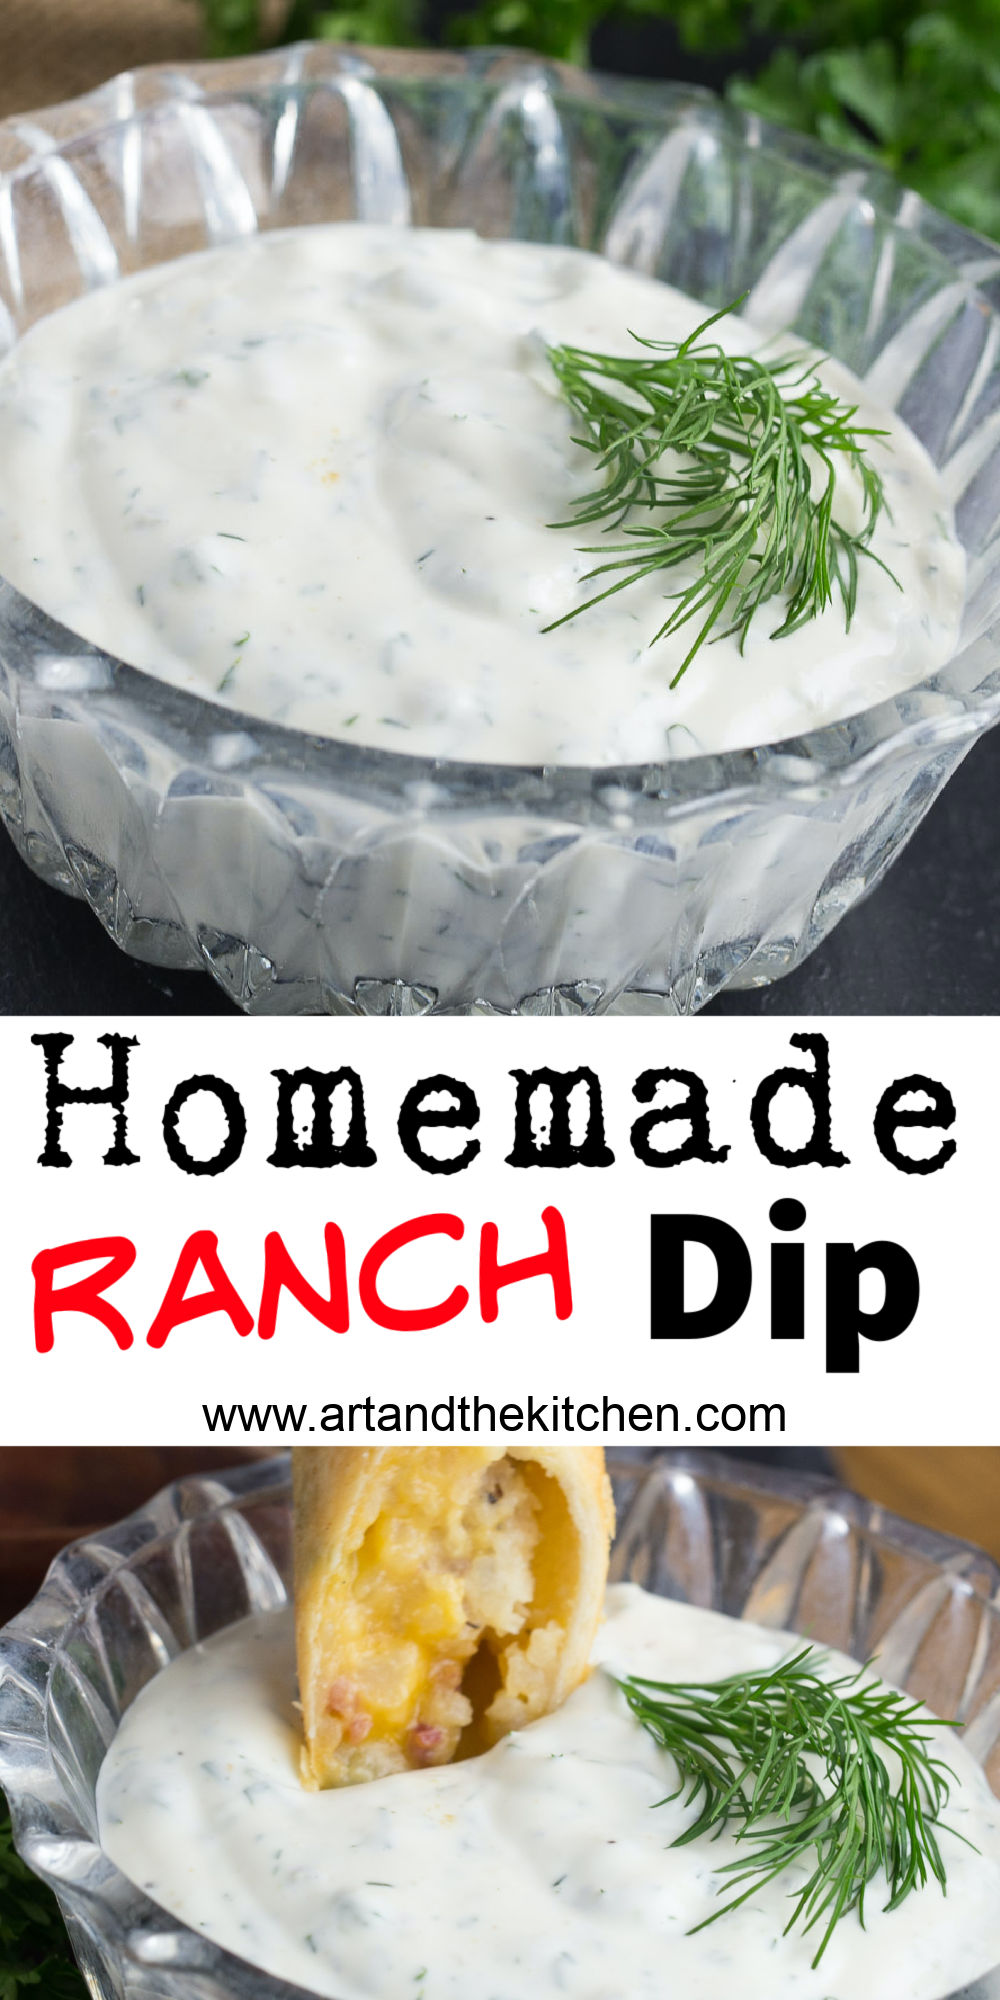 Creamy Ranch Dip is super flavourful and made from scratch! Quick and easy to make with fresh herbs of dill, parsley and green onion. No preservatives!  via @artandthekitch